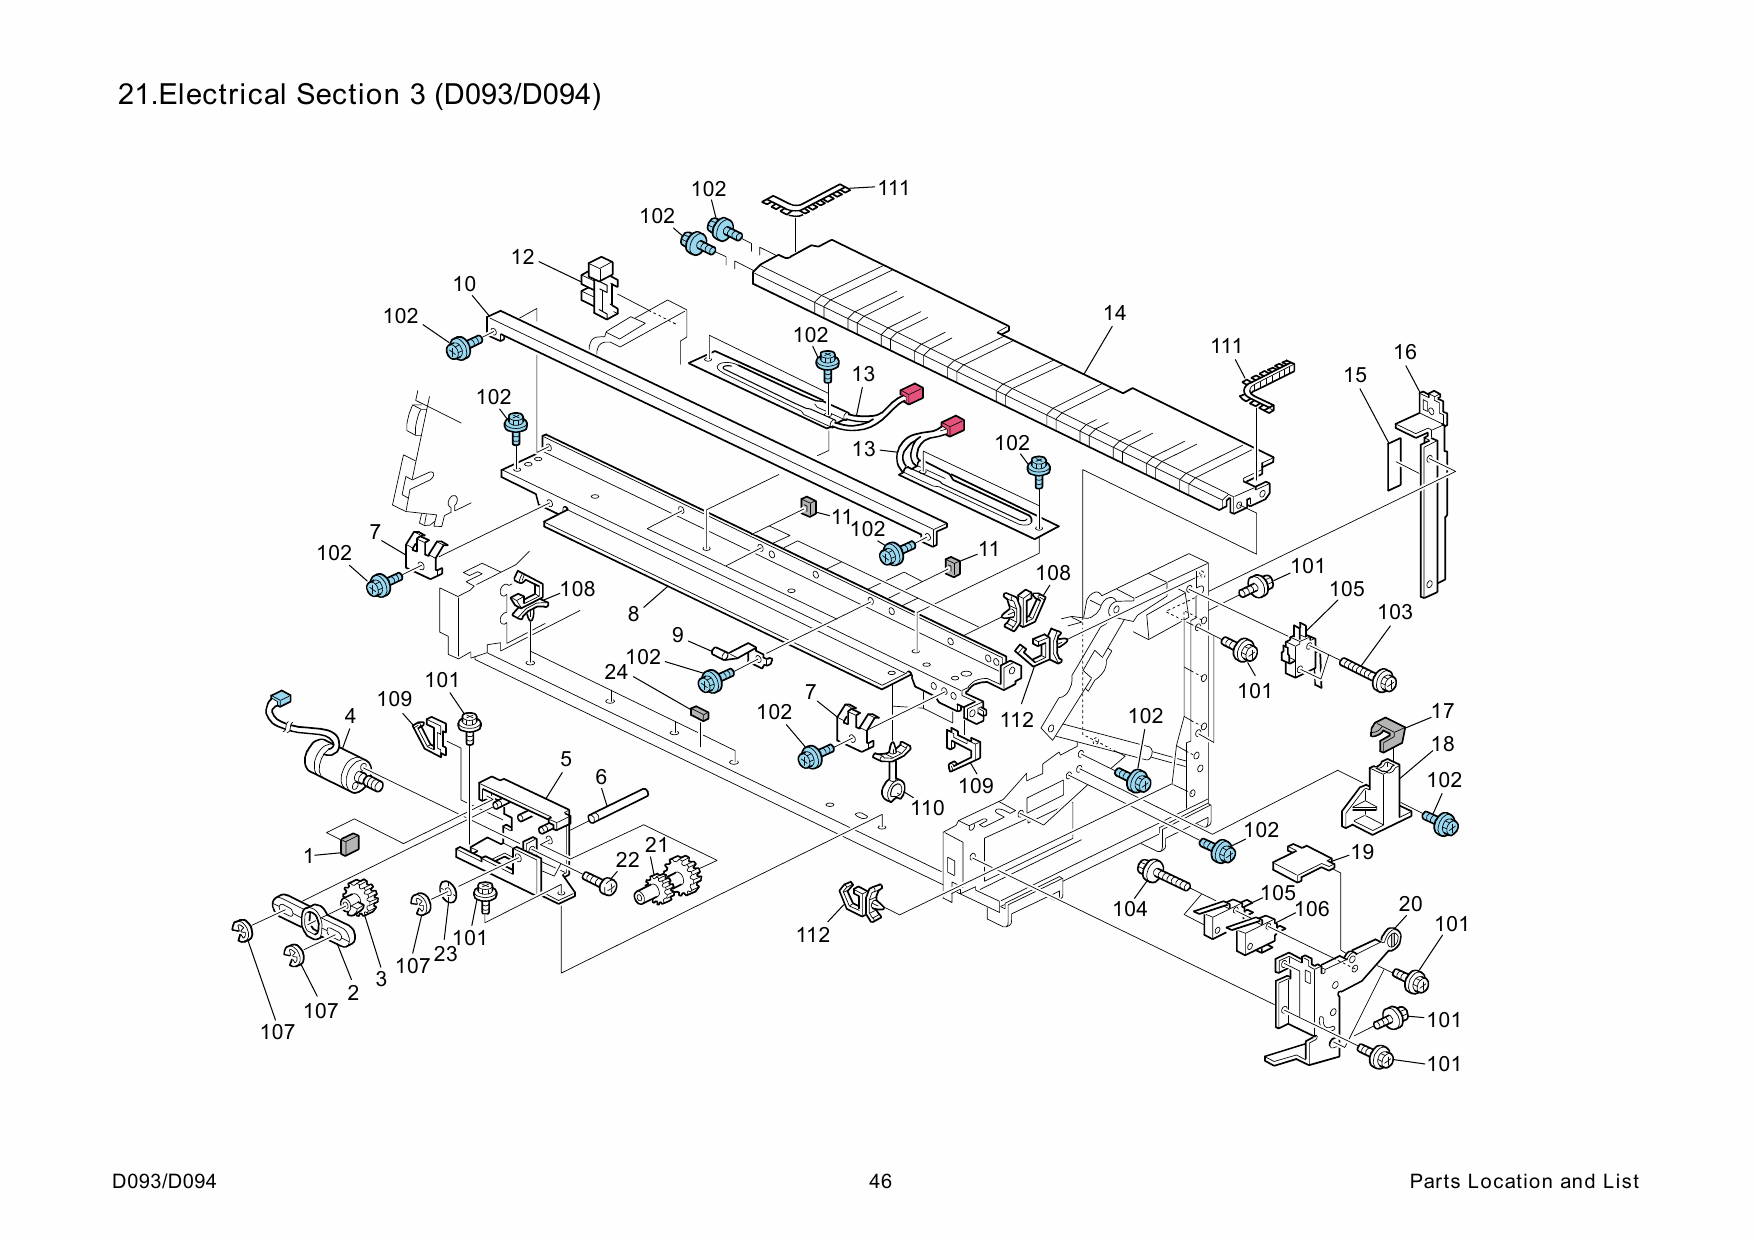 W210 Engine Diagram further E46 Temperature Sensor Location furthermore Mercedes Ml320 Fuse Box Diagram likewise Mercedes Clk 320 Engine Diagram in addition 2000 Ford Focus Air Filter Box. on mercedes benz 1999 ml320 fuel filter location